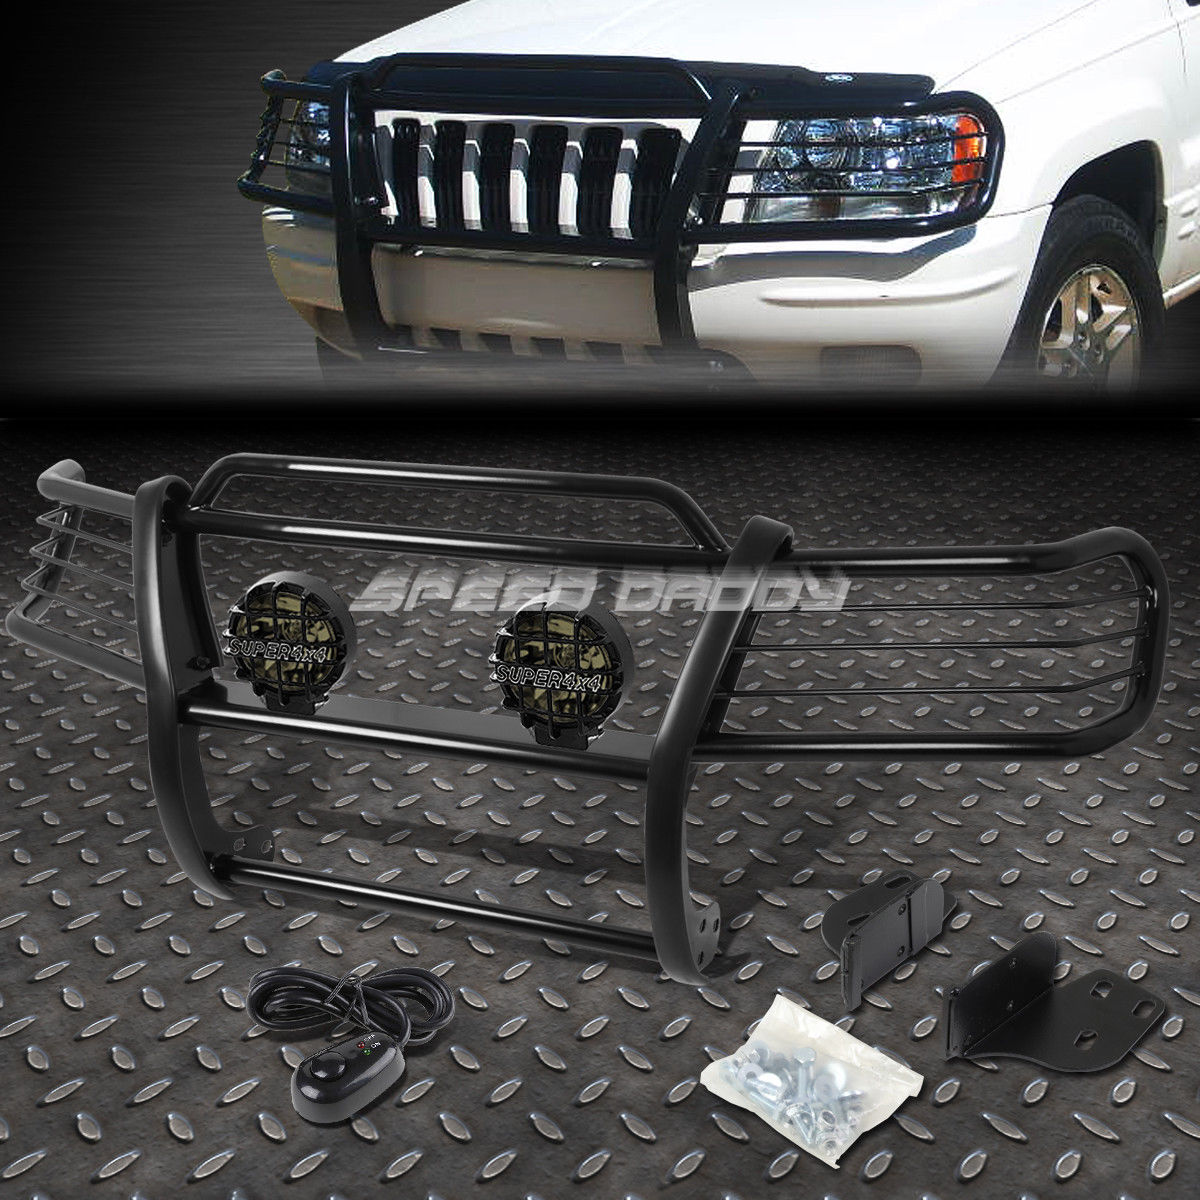 フォグライト BLACK BRUSH GRILL GUARD+ROUND SMOKE FOG LIGHT FOR 99-04 JEEP GRAND CHEROKEE WJ ブラックブラッシュグリルガード+ ROUND SMOKE FOGライトfor 99-04 JEEP GRAND CHEROKEE WJ